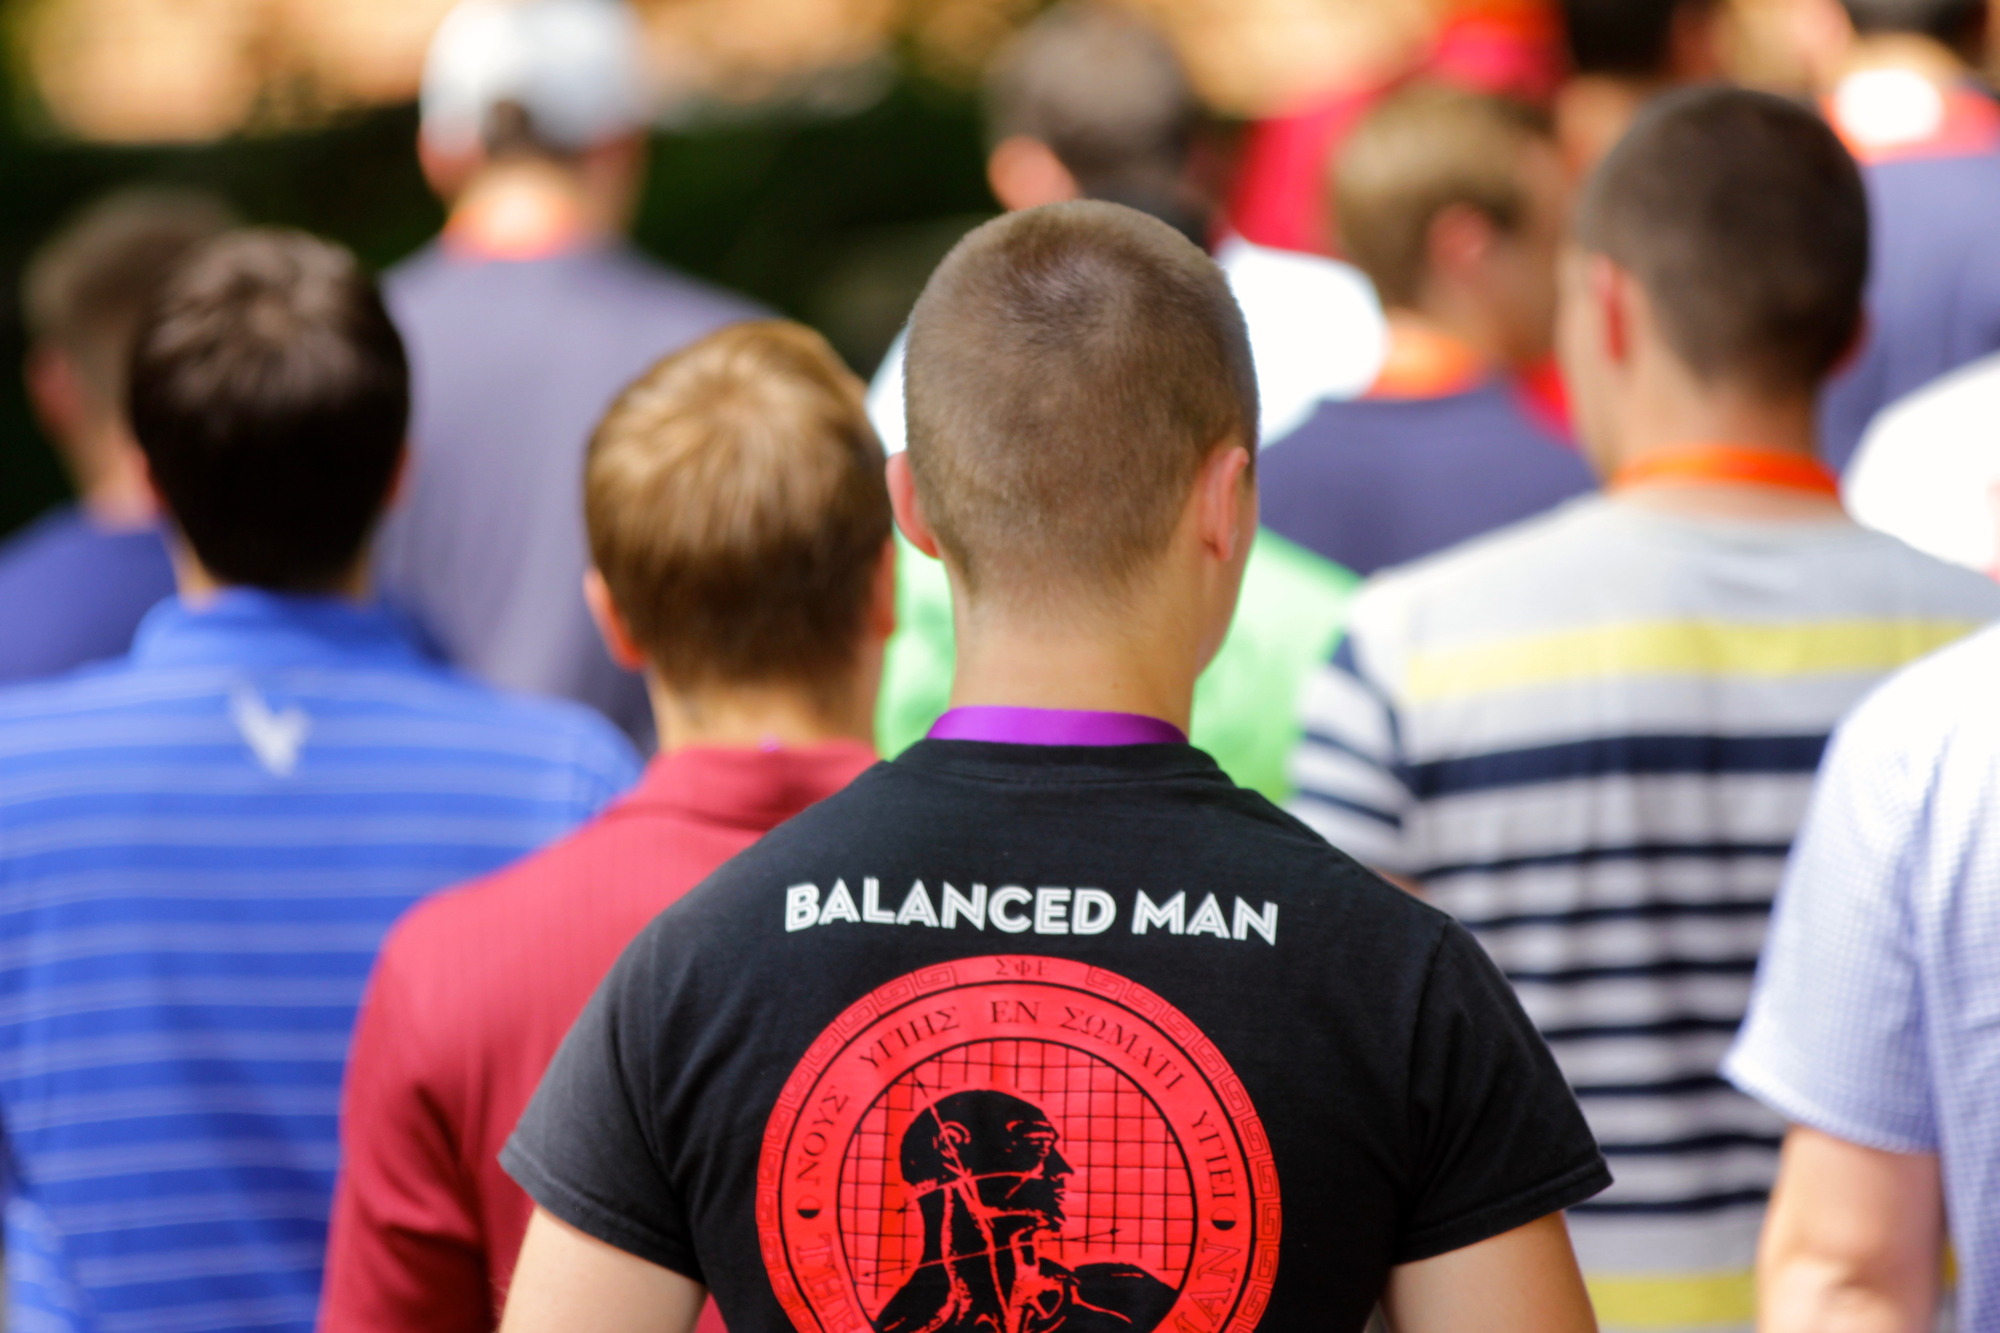 The Balanced Man Program